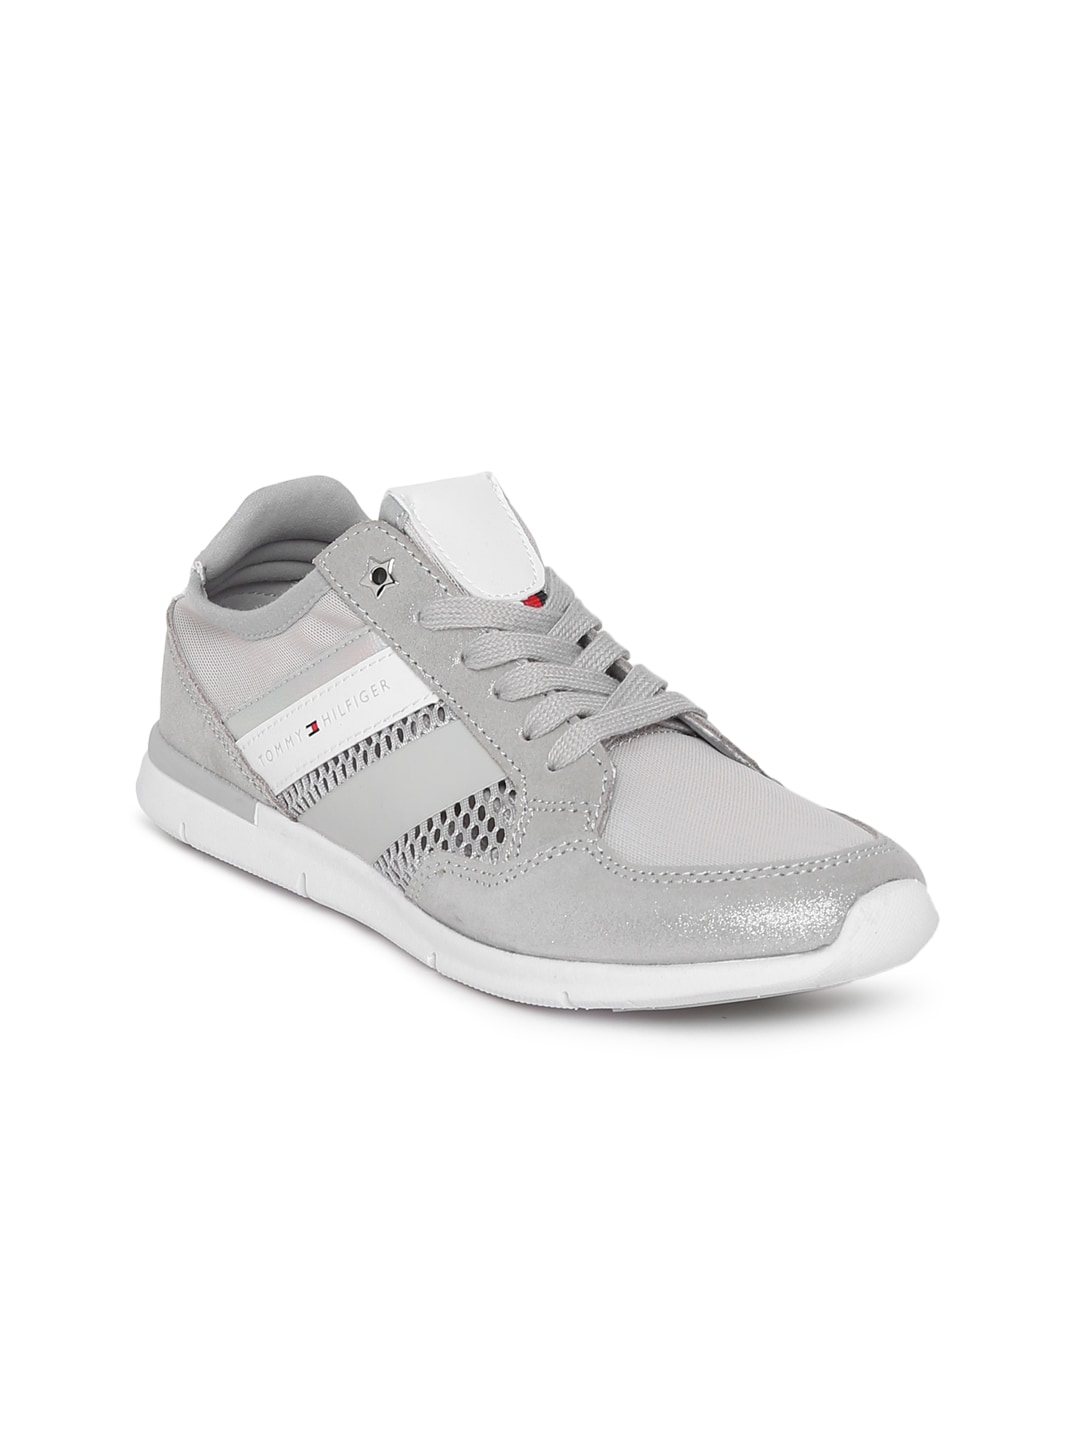 b983ca803c87 Women s Tommy Hilfiger Shoes - Buy Tommy Hilfiger Shoes for Women Online in  India